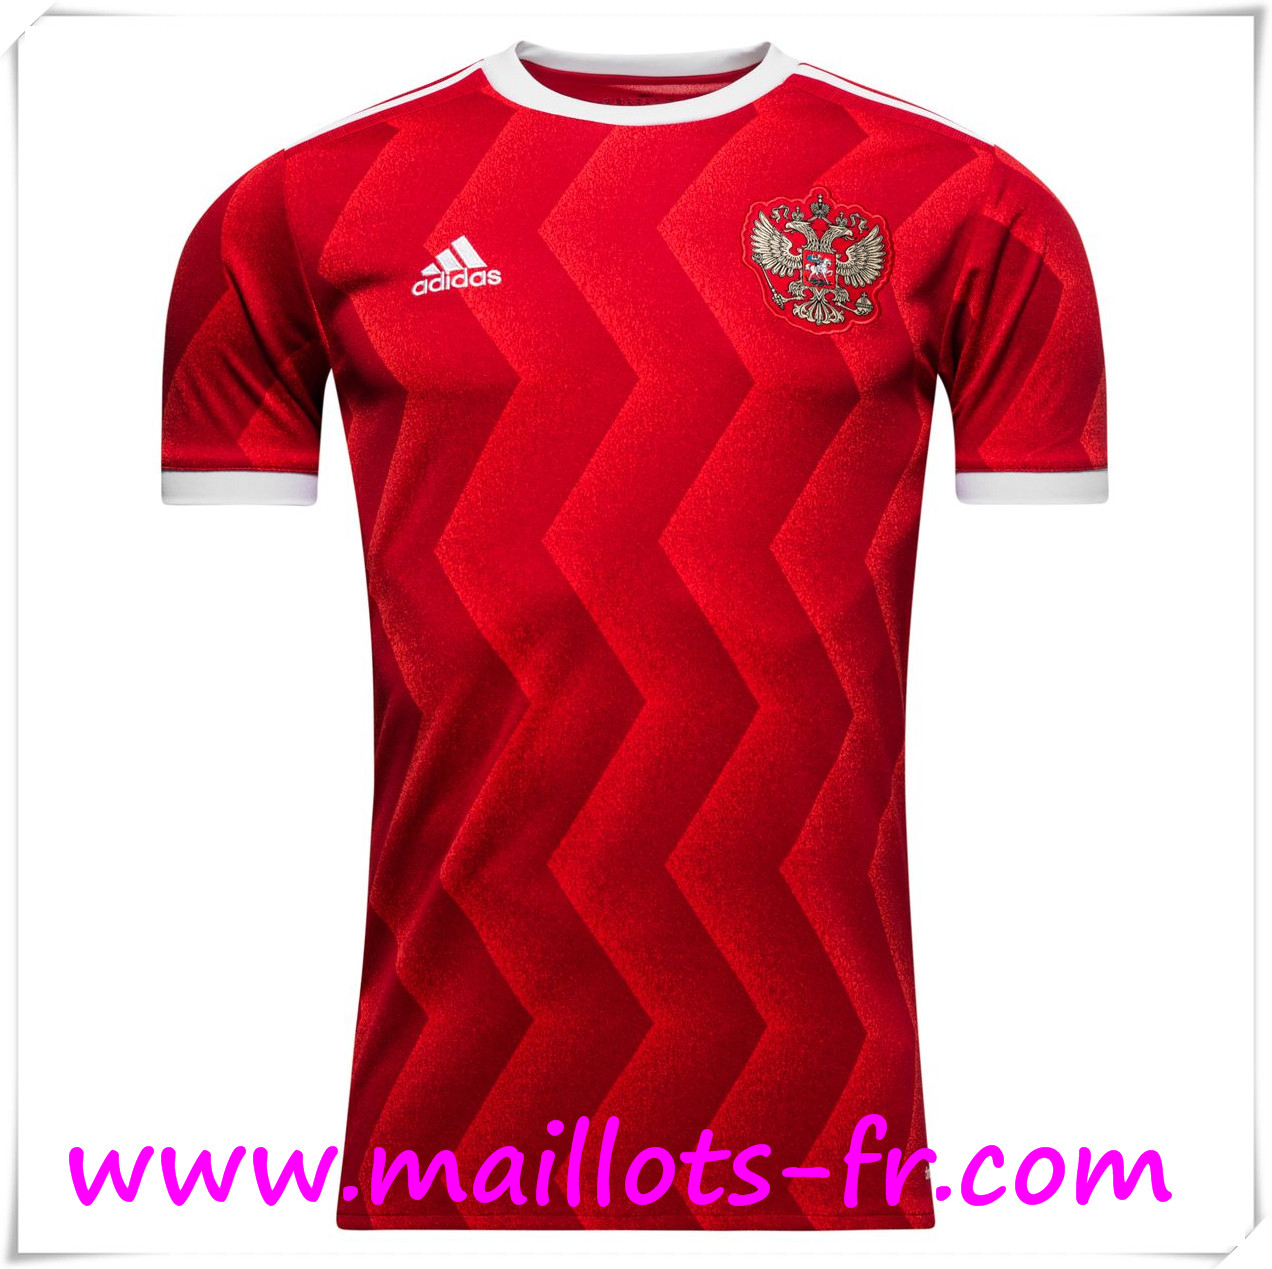 maillots-fr Maillot Equipe De Russie 2017 2018 Domicile